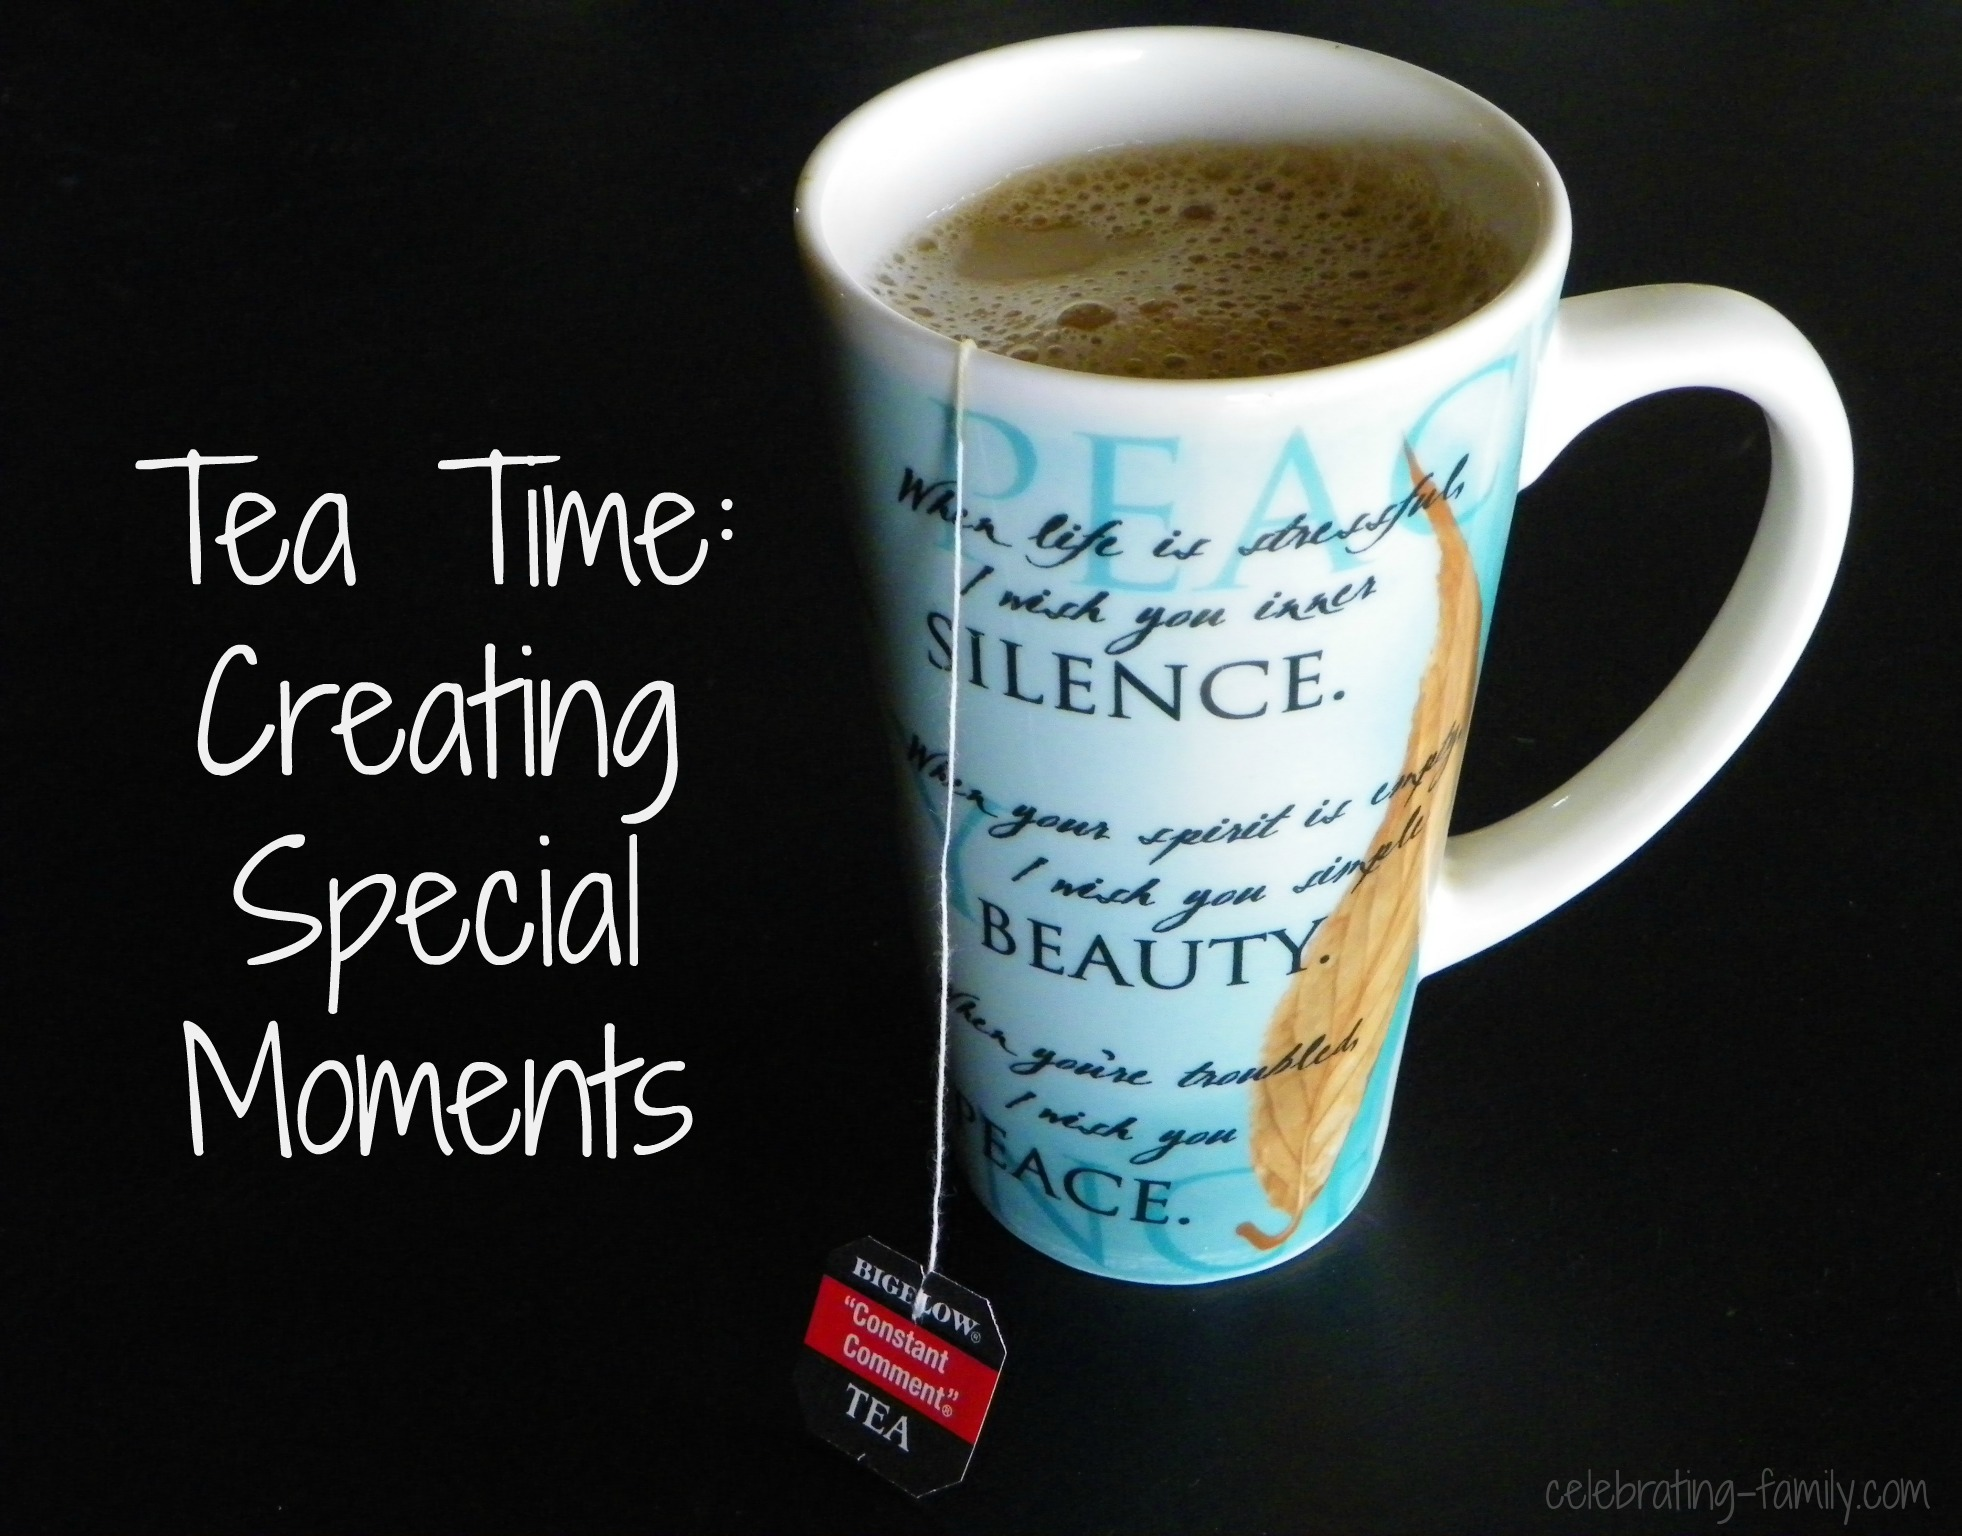 Tea Time Creating Special Moments